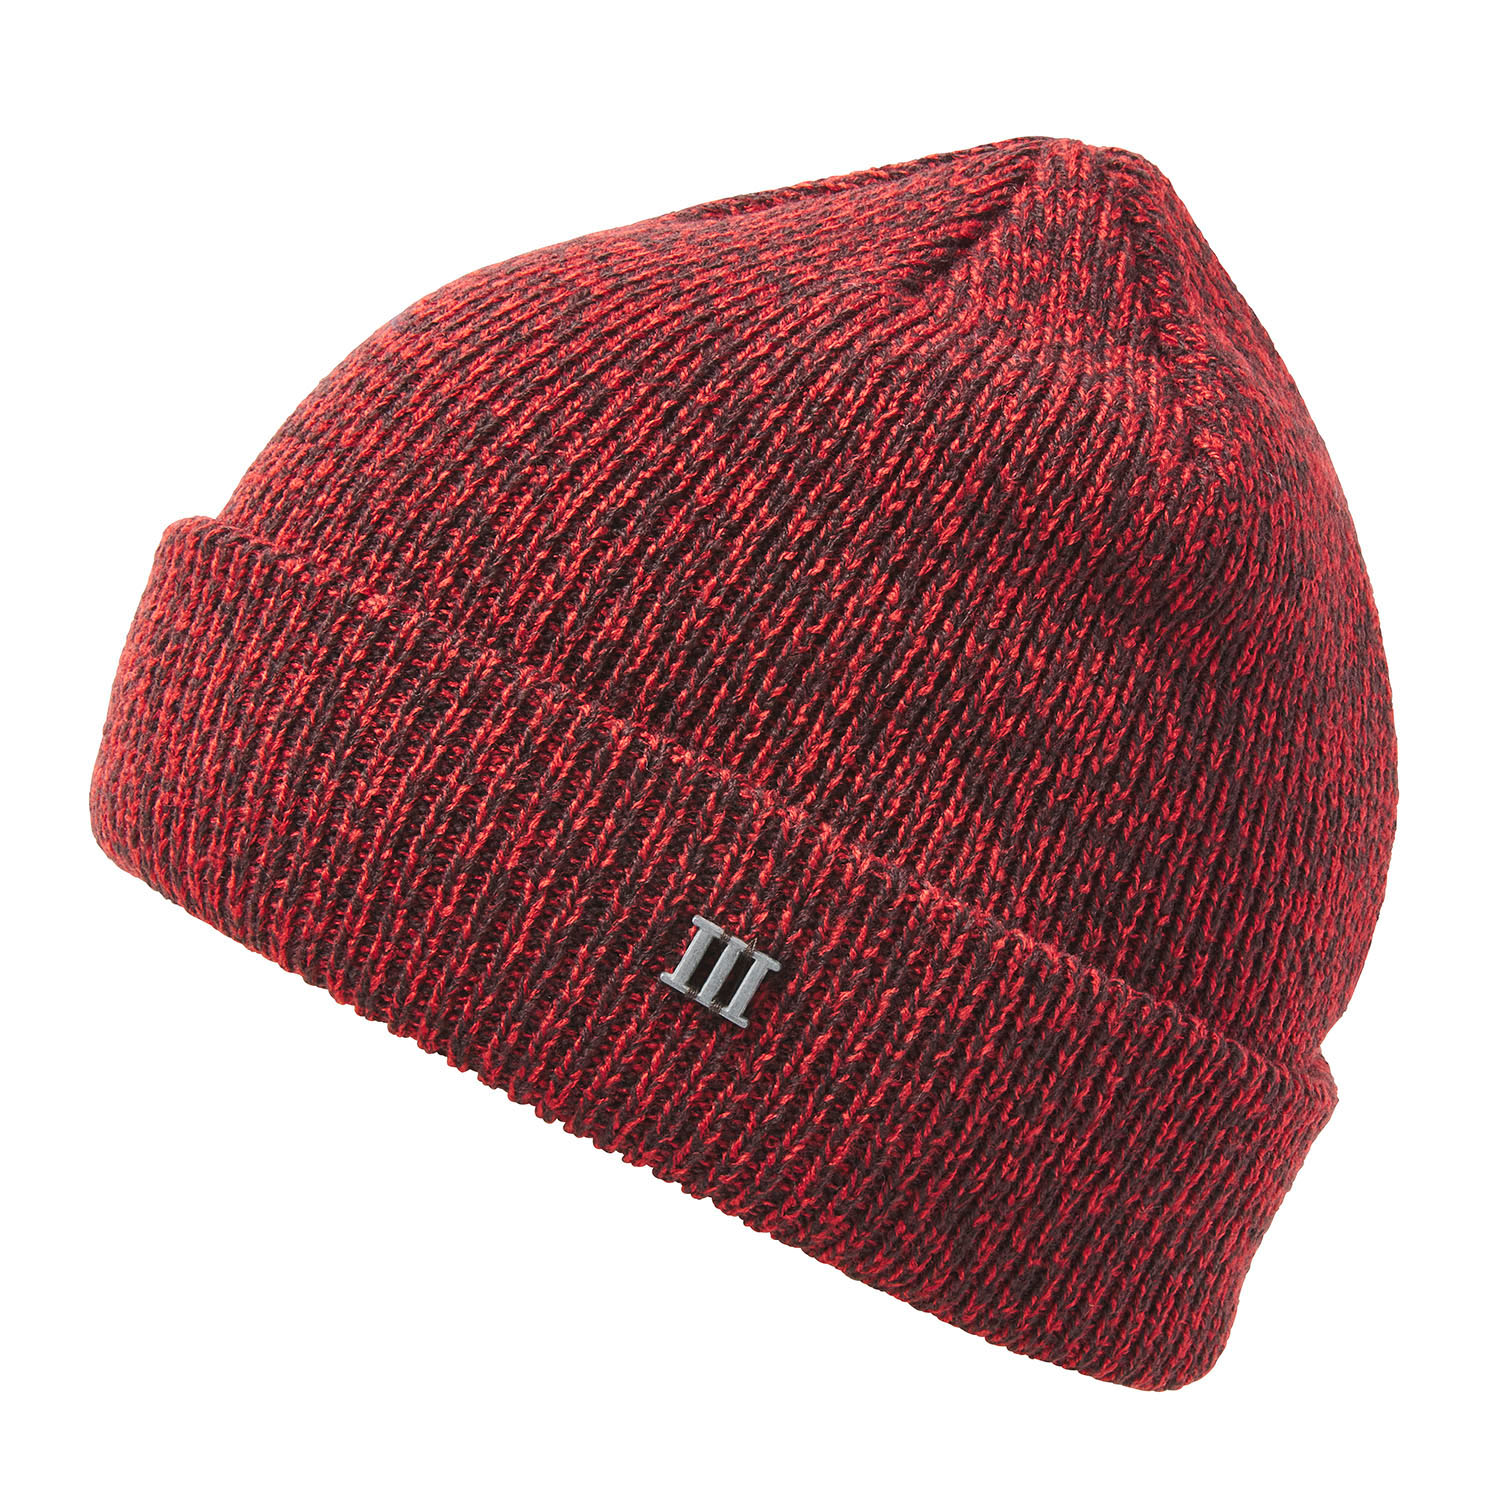 EARC | Fine knit beanie with cuff and metallic 3 in dark brown